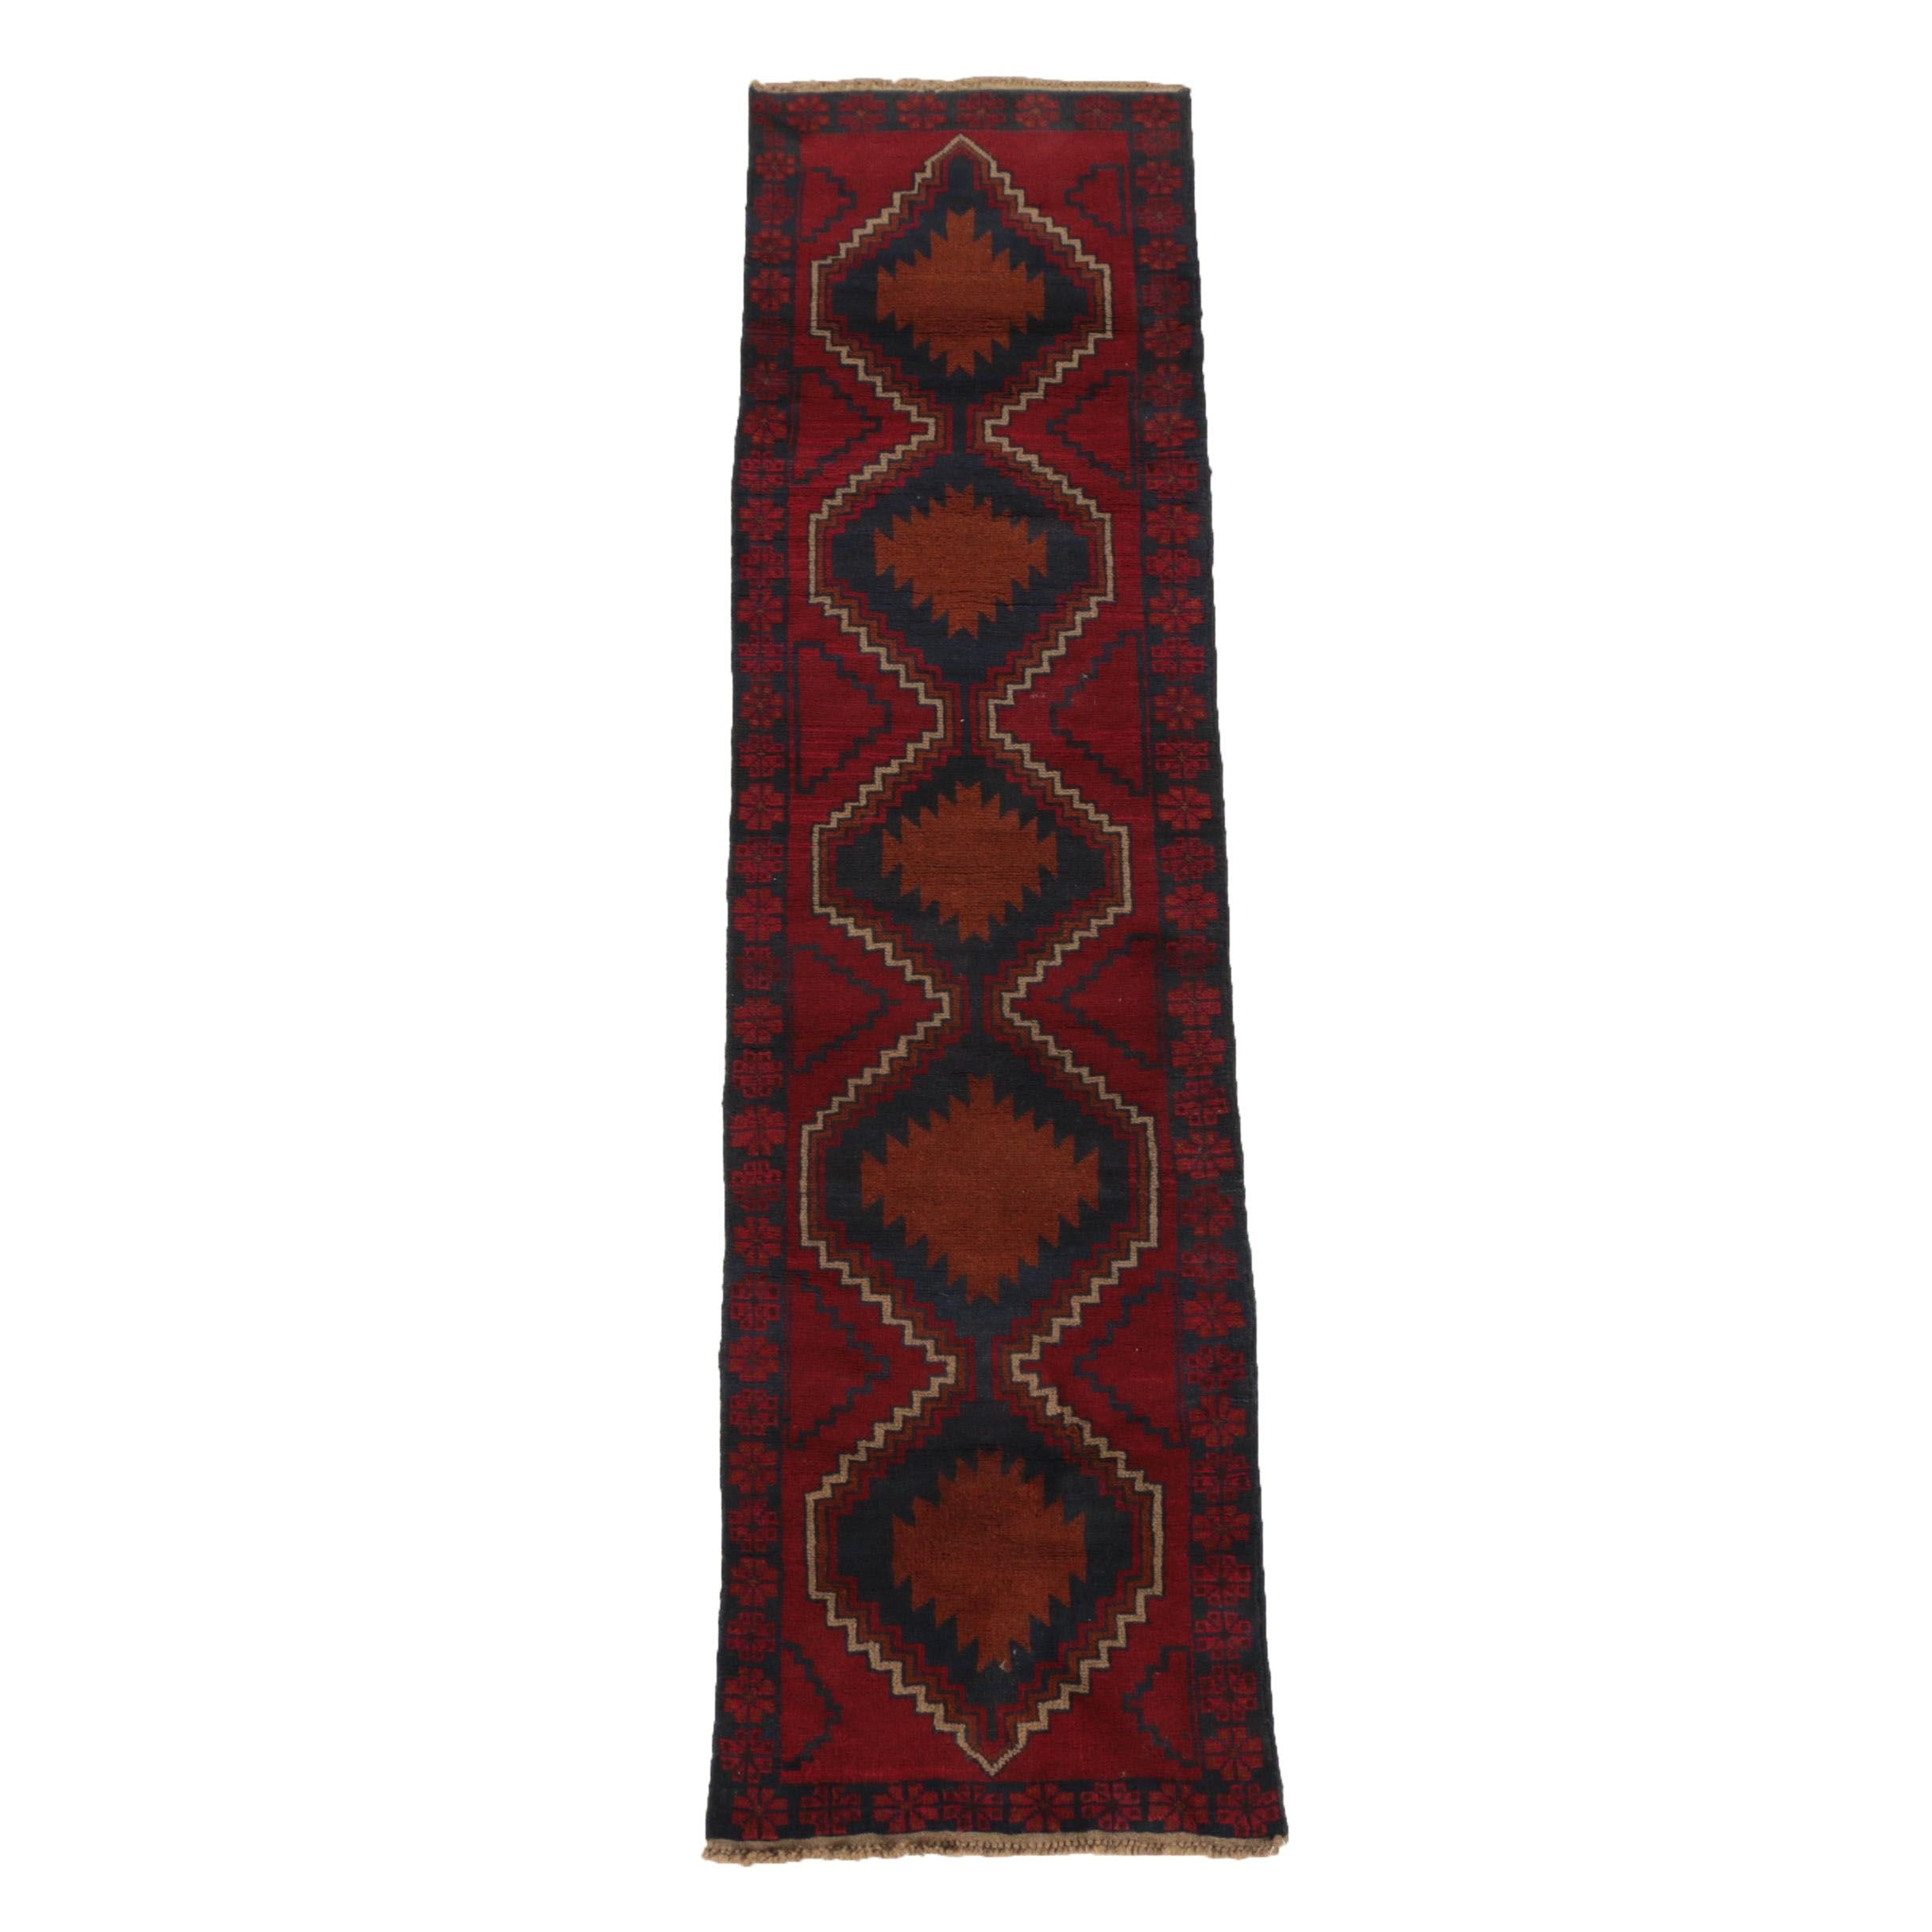 Hand-Knotted Pakistani Baluch Wool Runner